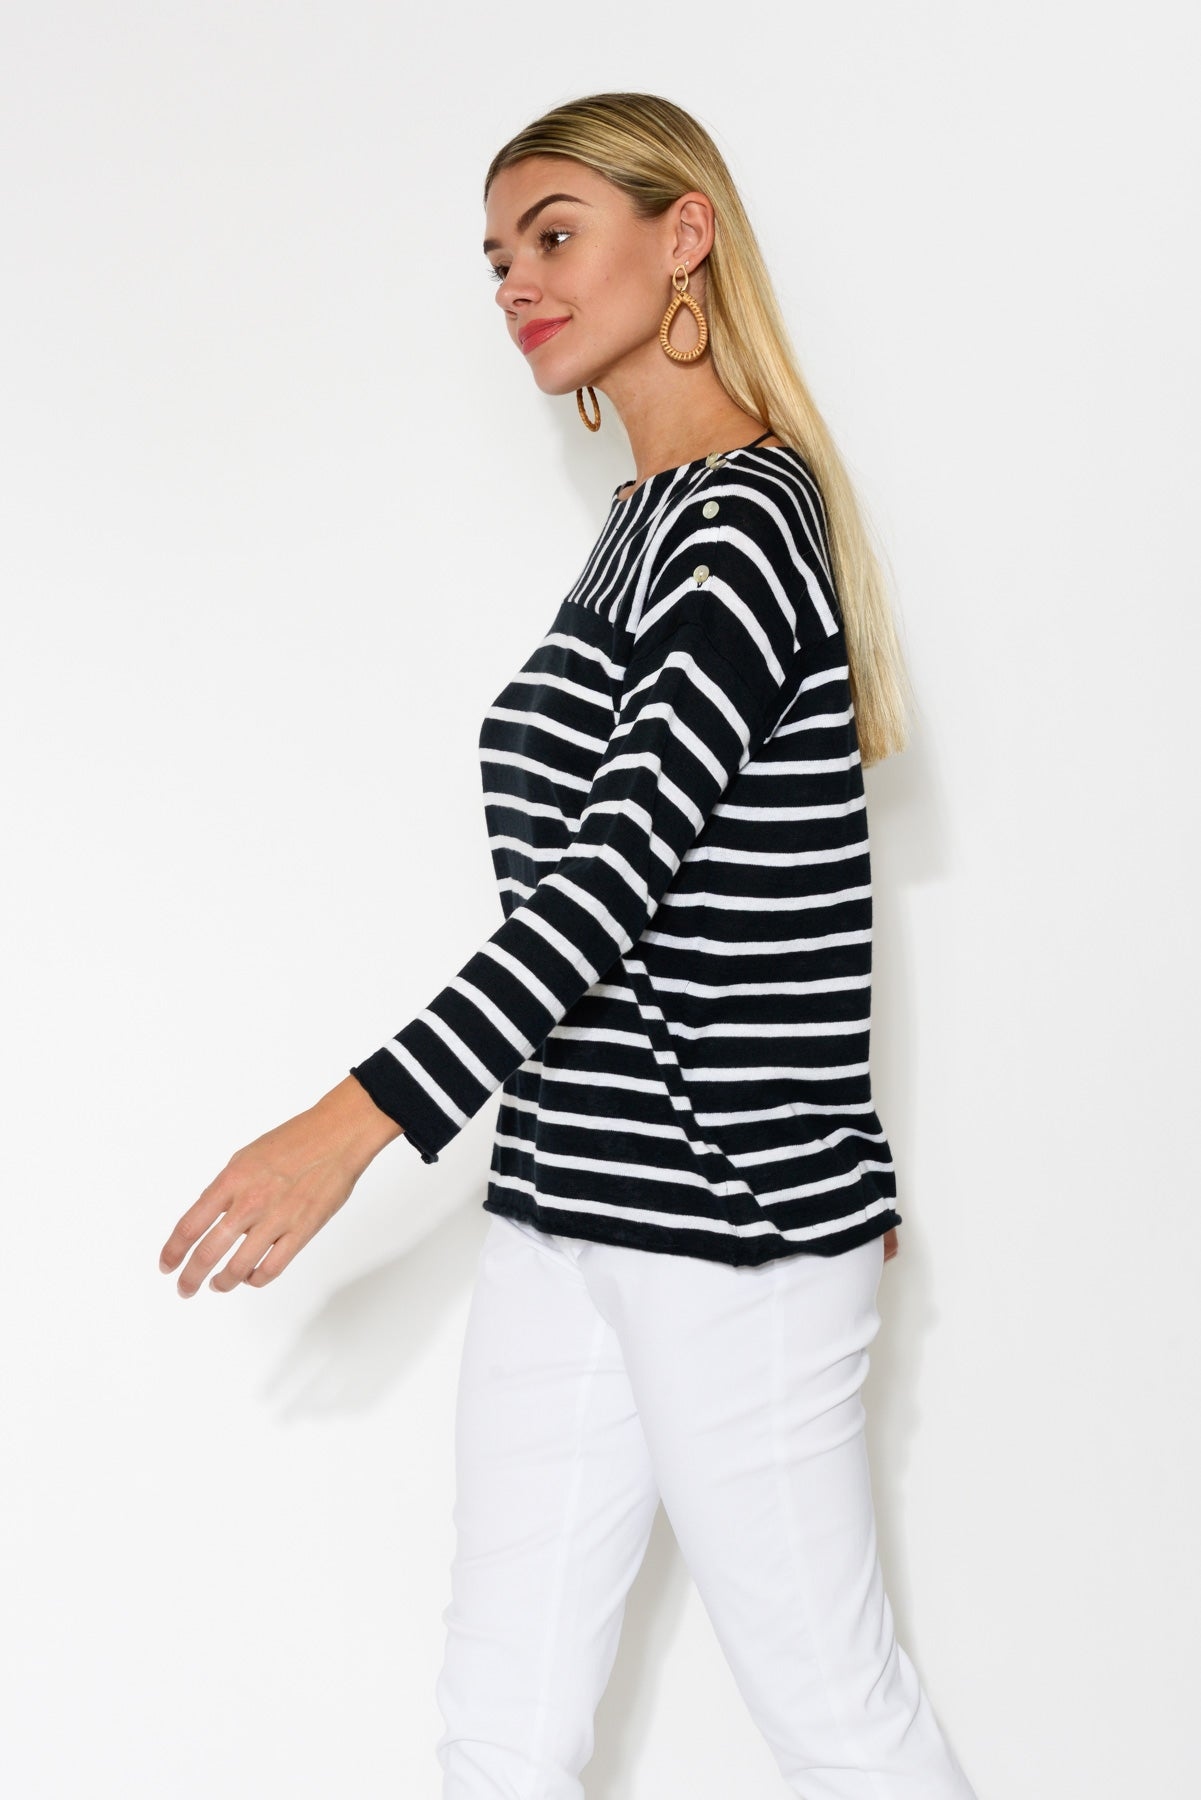 Breton Navy Stripe Linen Blend Top - Blue Bungalow